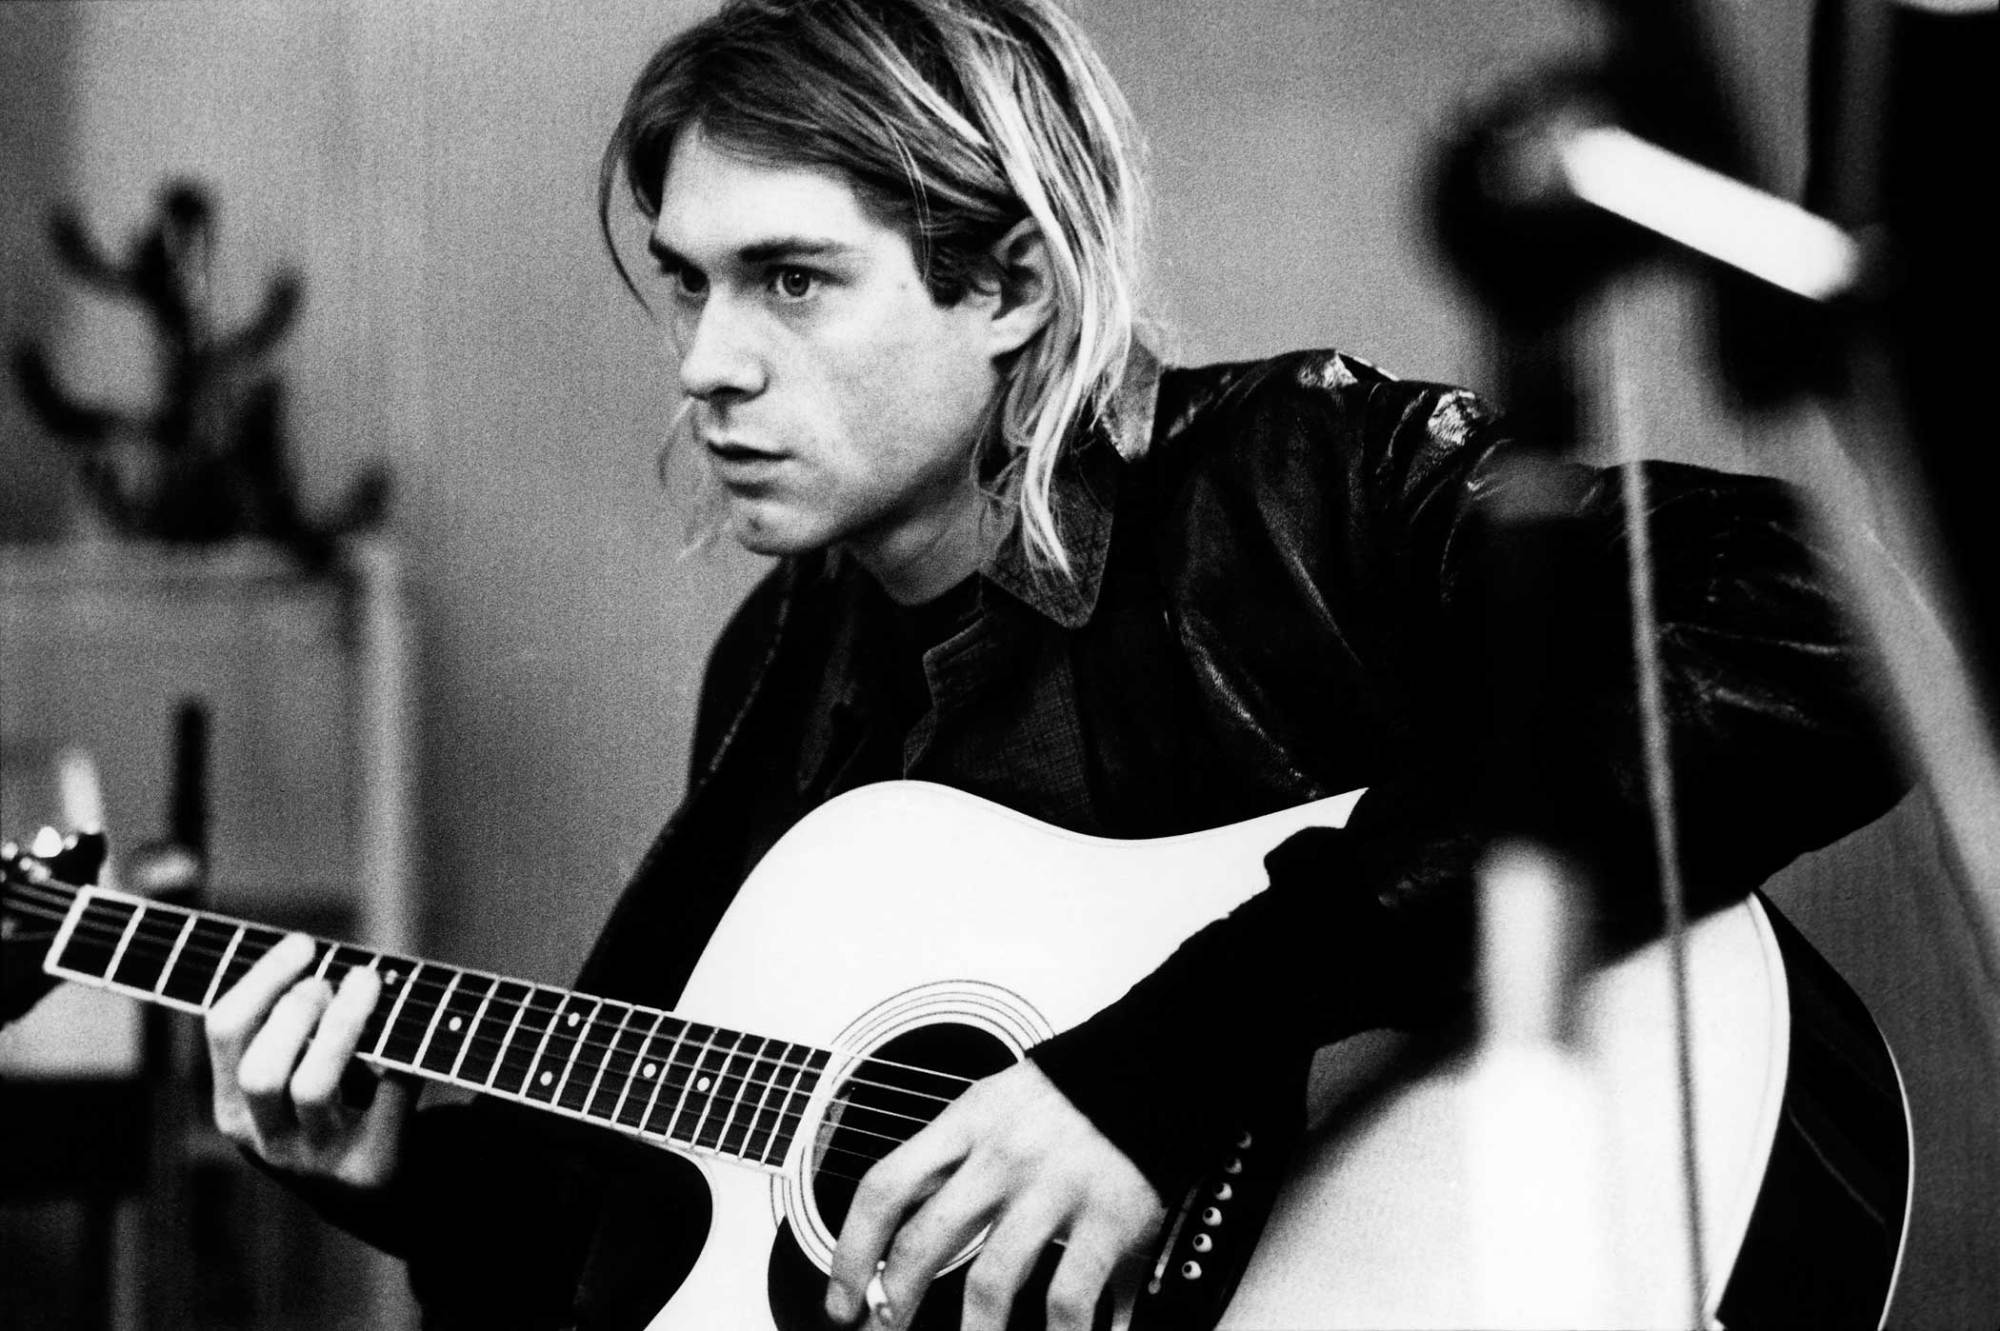 HQ Kurt Cobain Wallpapers | File 259.62Kb